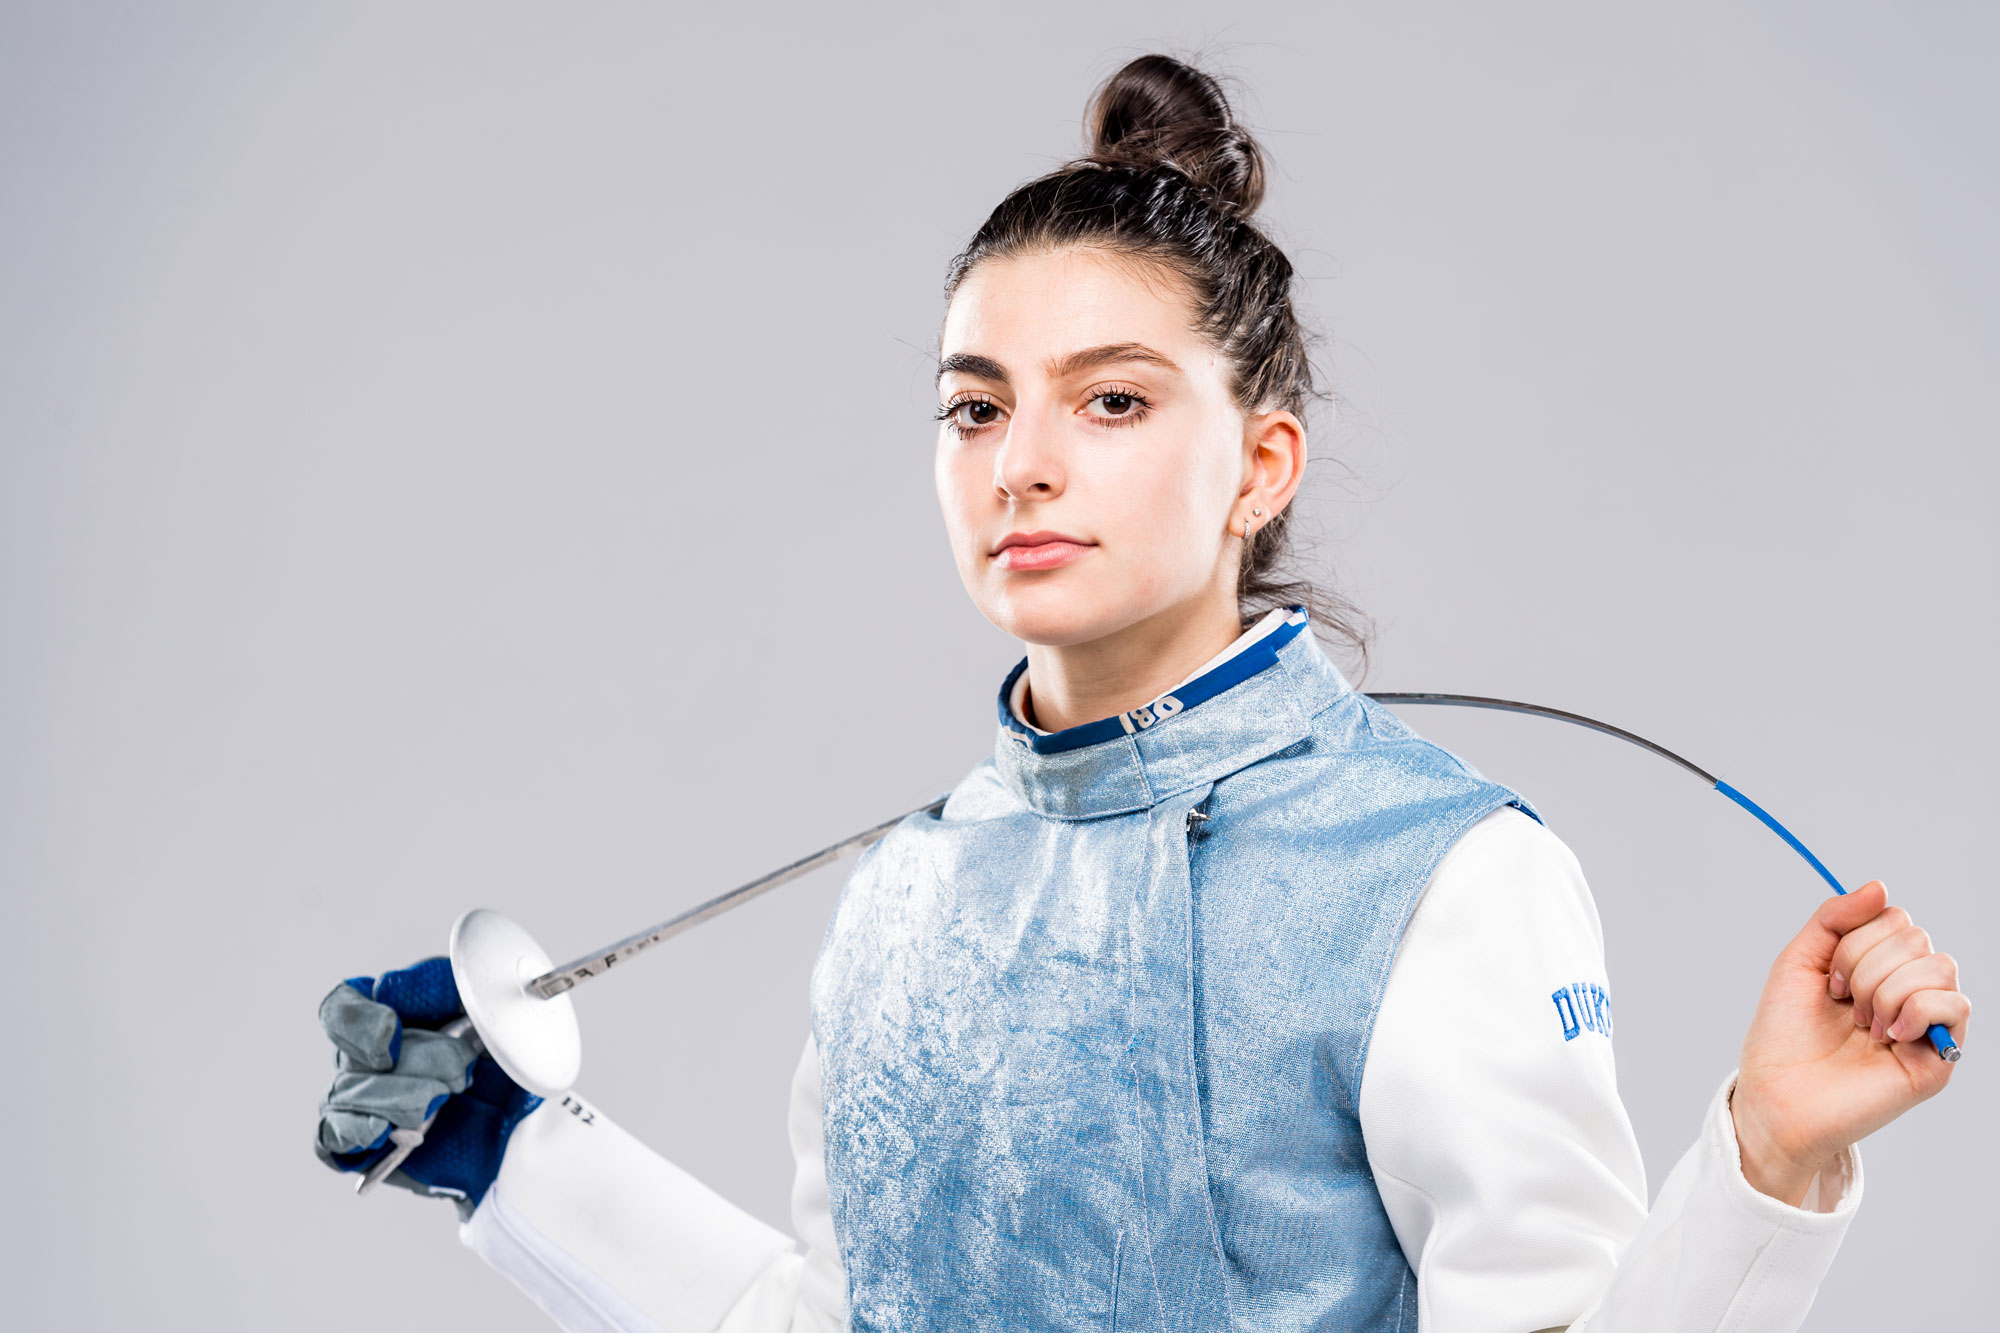 Senior Julia Gianneschi, co-captain of the Duke women's fencing team